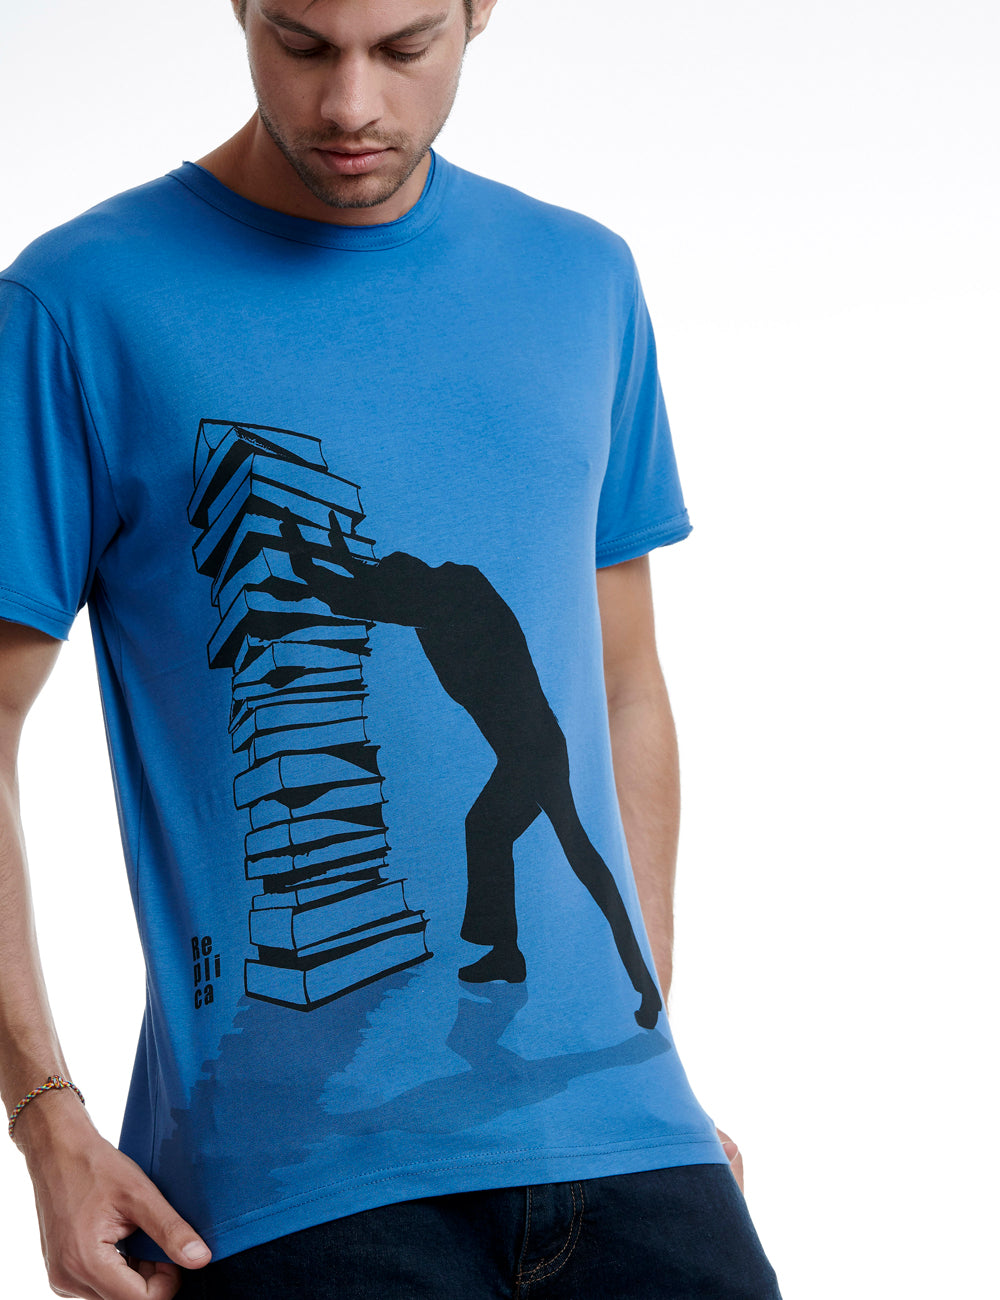 Books replica tshirt Greece blue